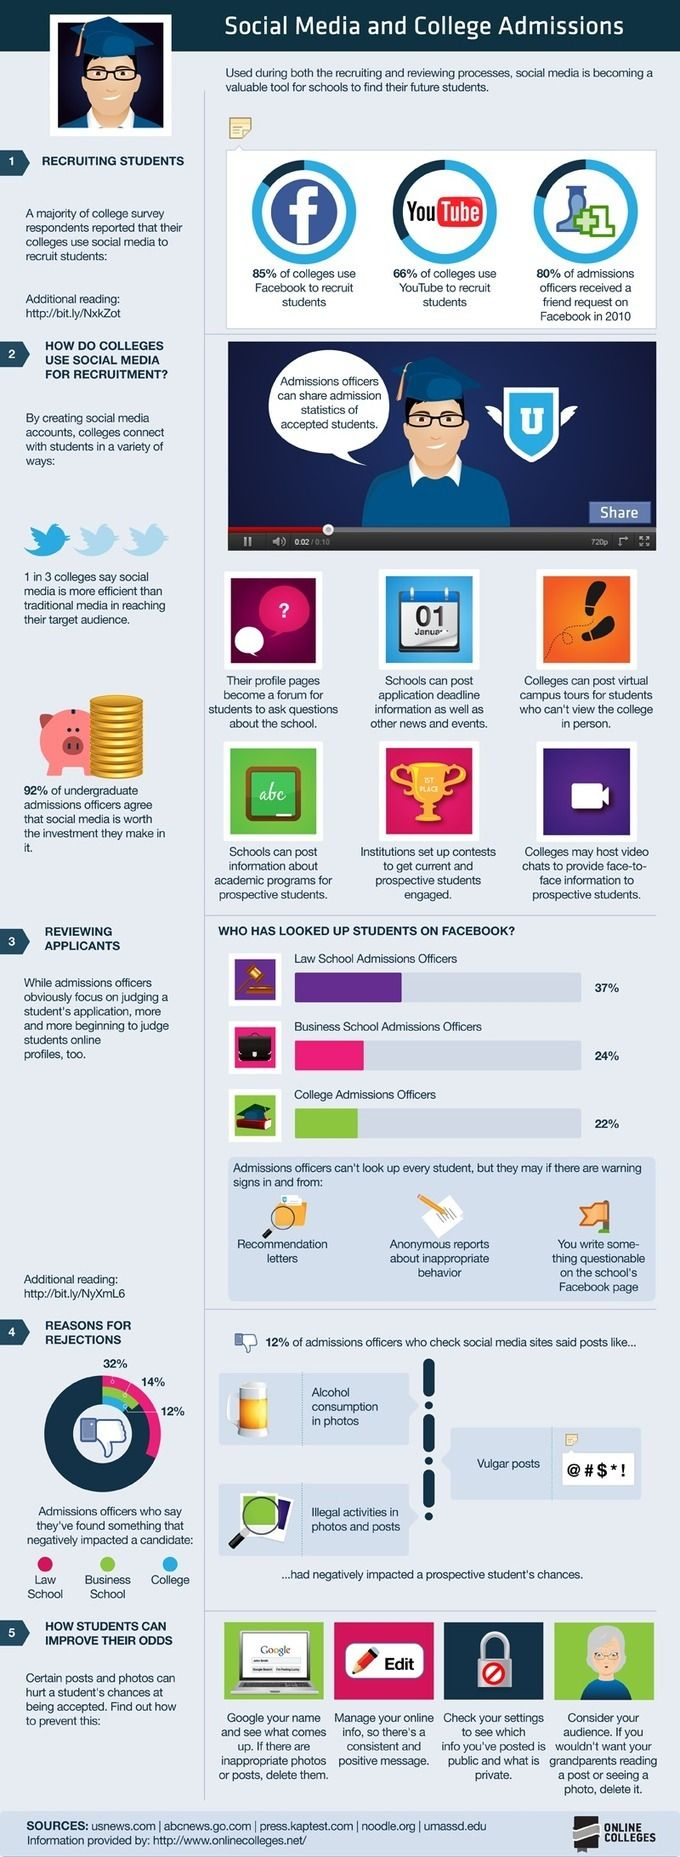 Social Media And College Admissions [INFOGRAPHIC] - AllTwitter via @nancyrubin